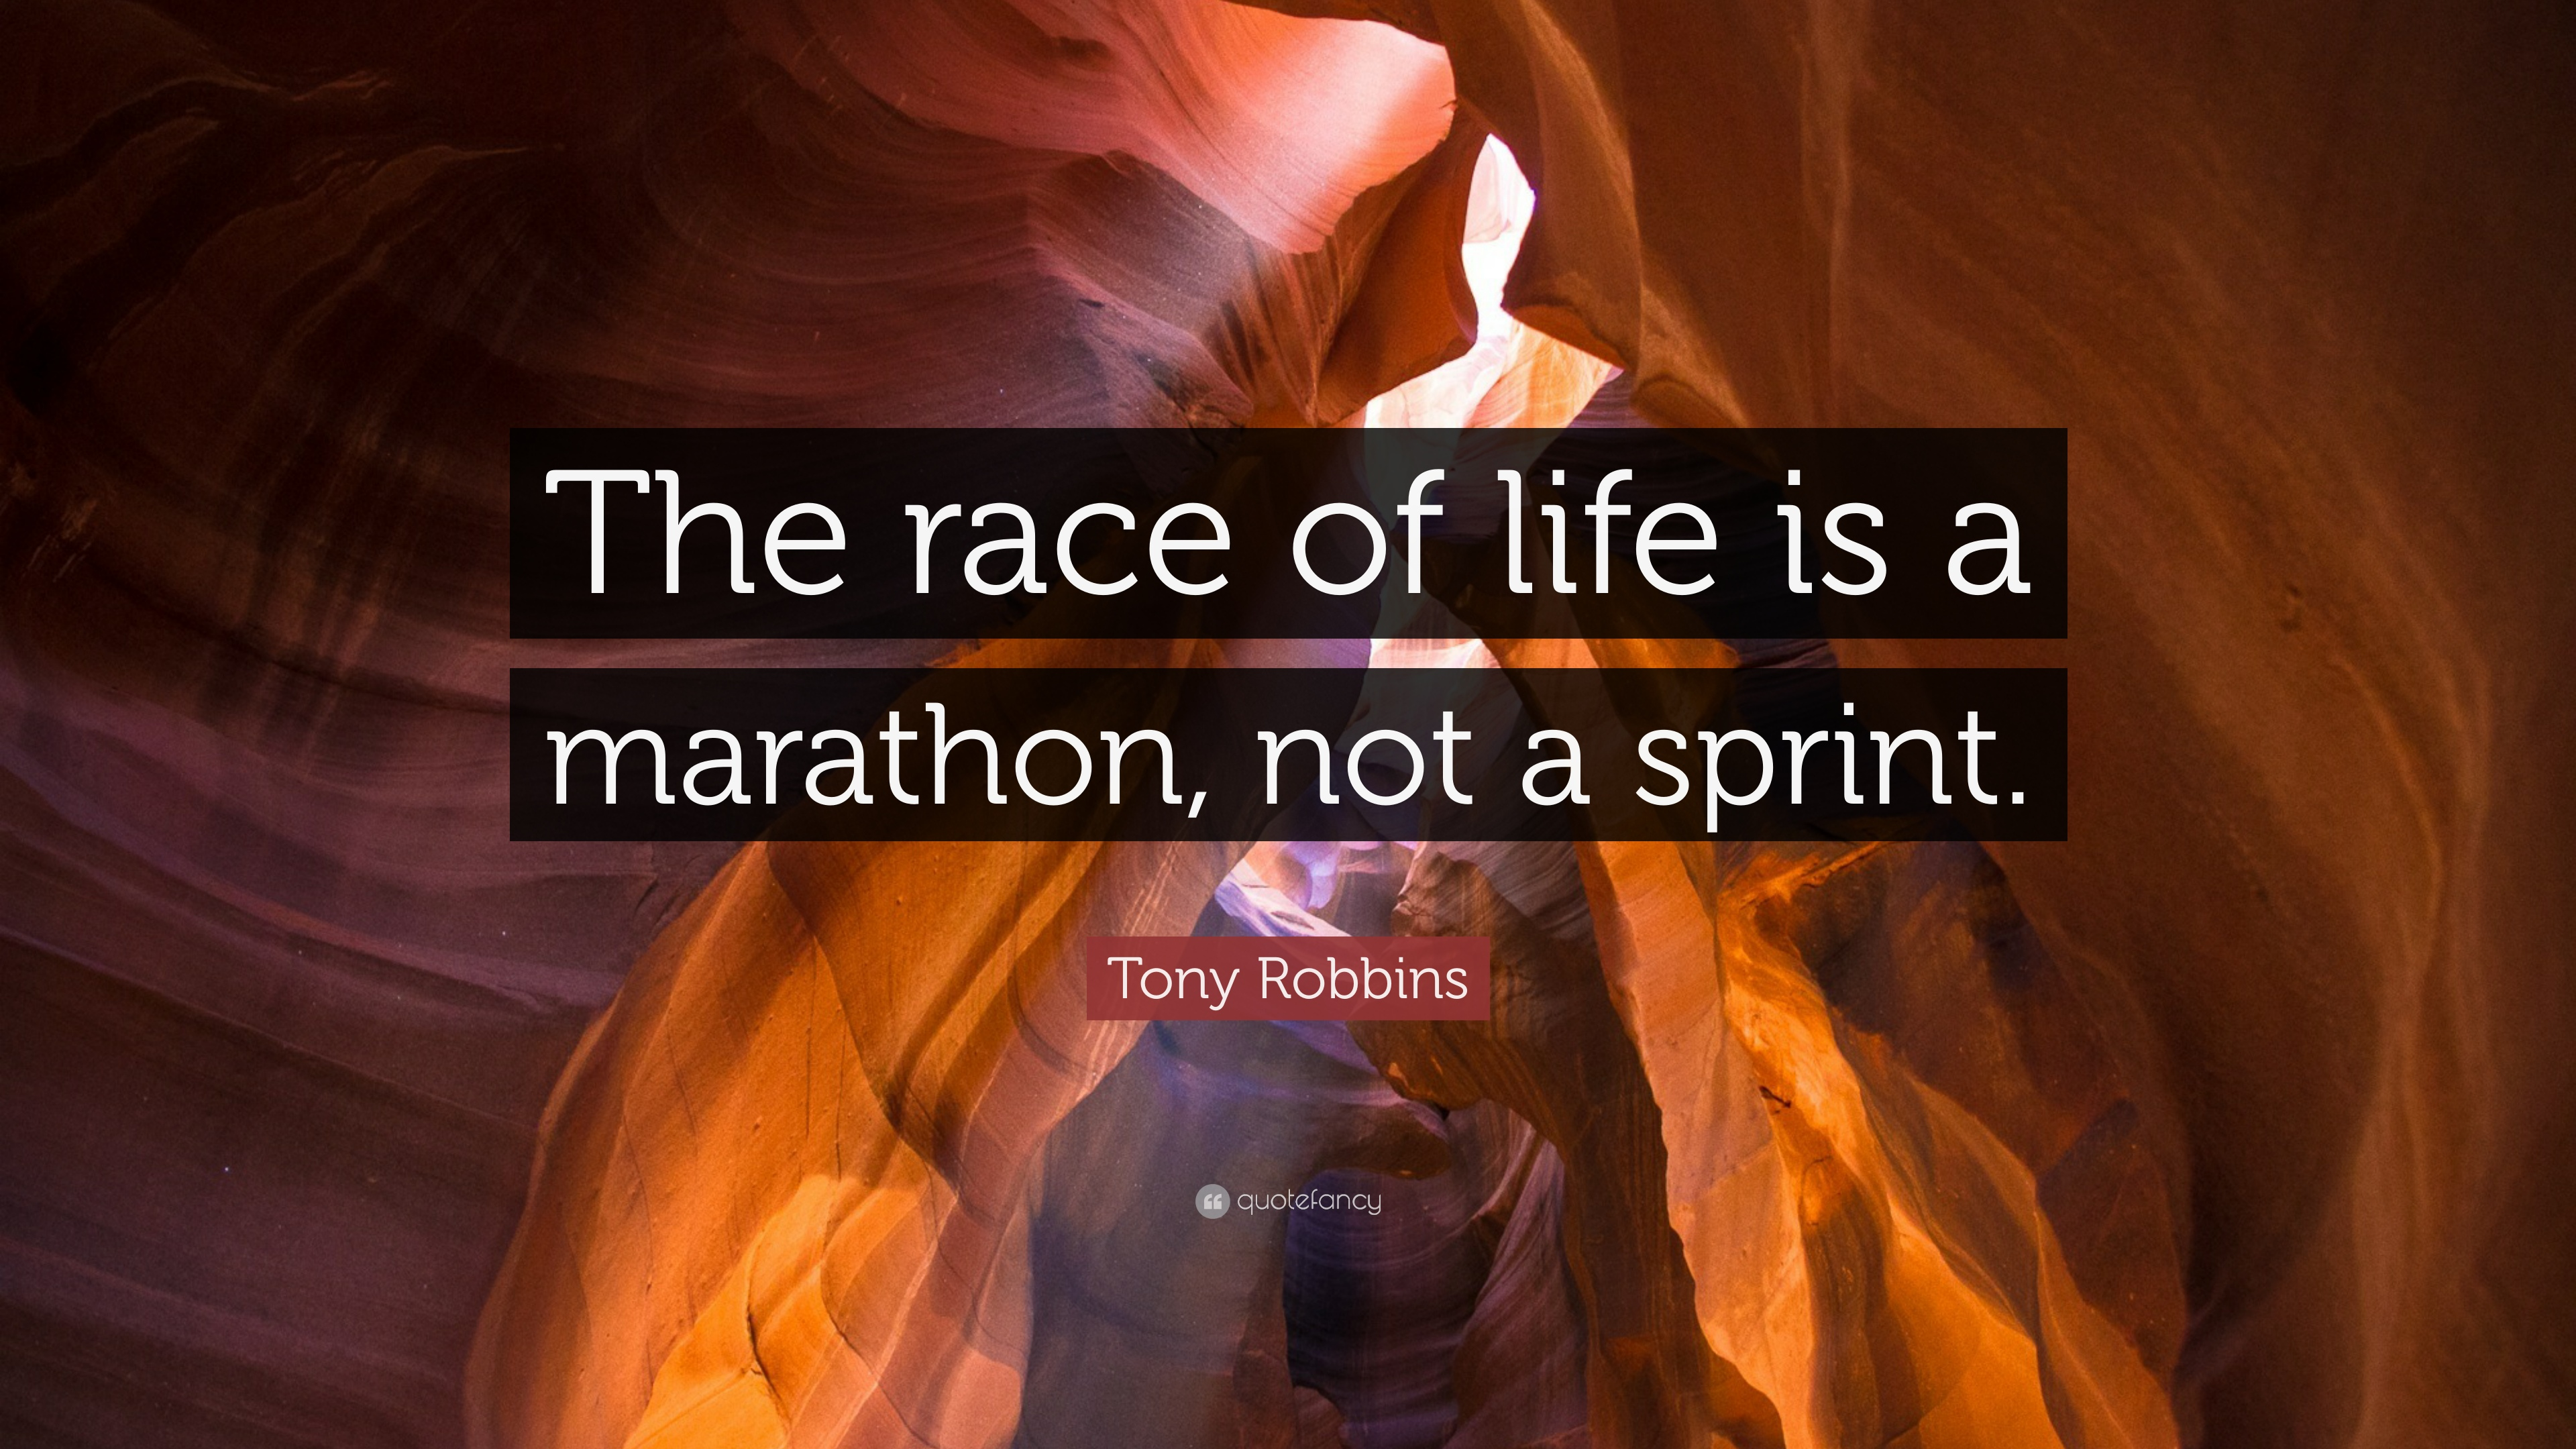 Tony Robbins Quote The Race Of Life Is A Marathon Not A Sprint